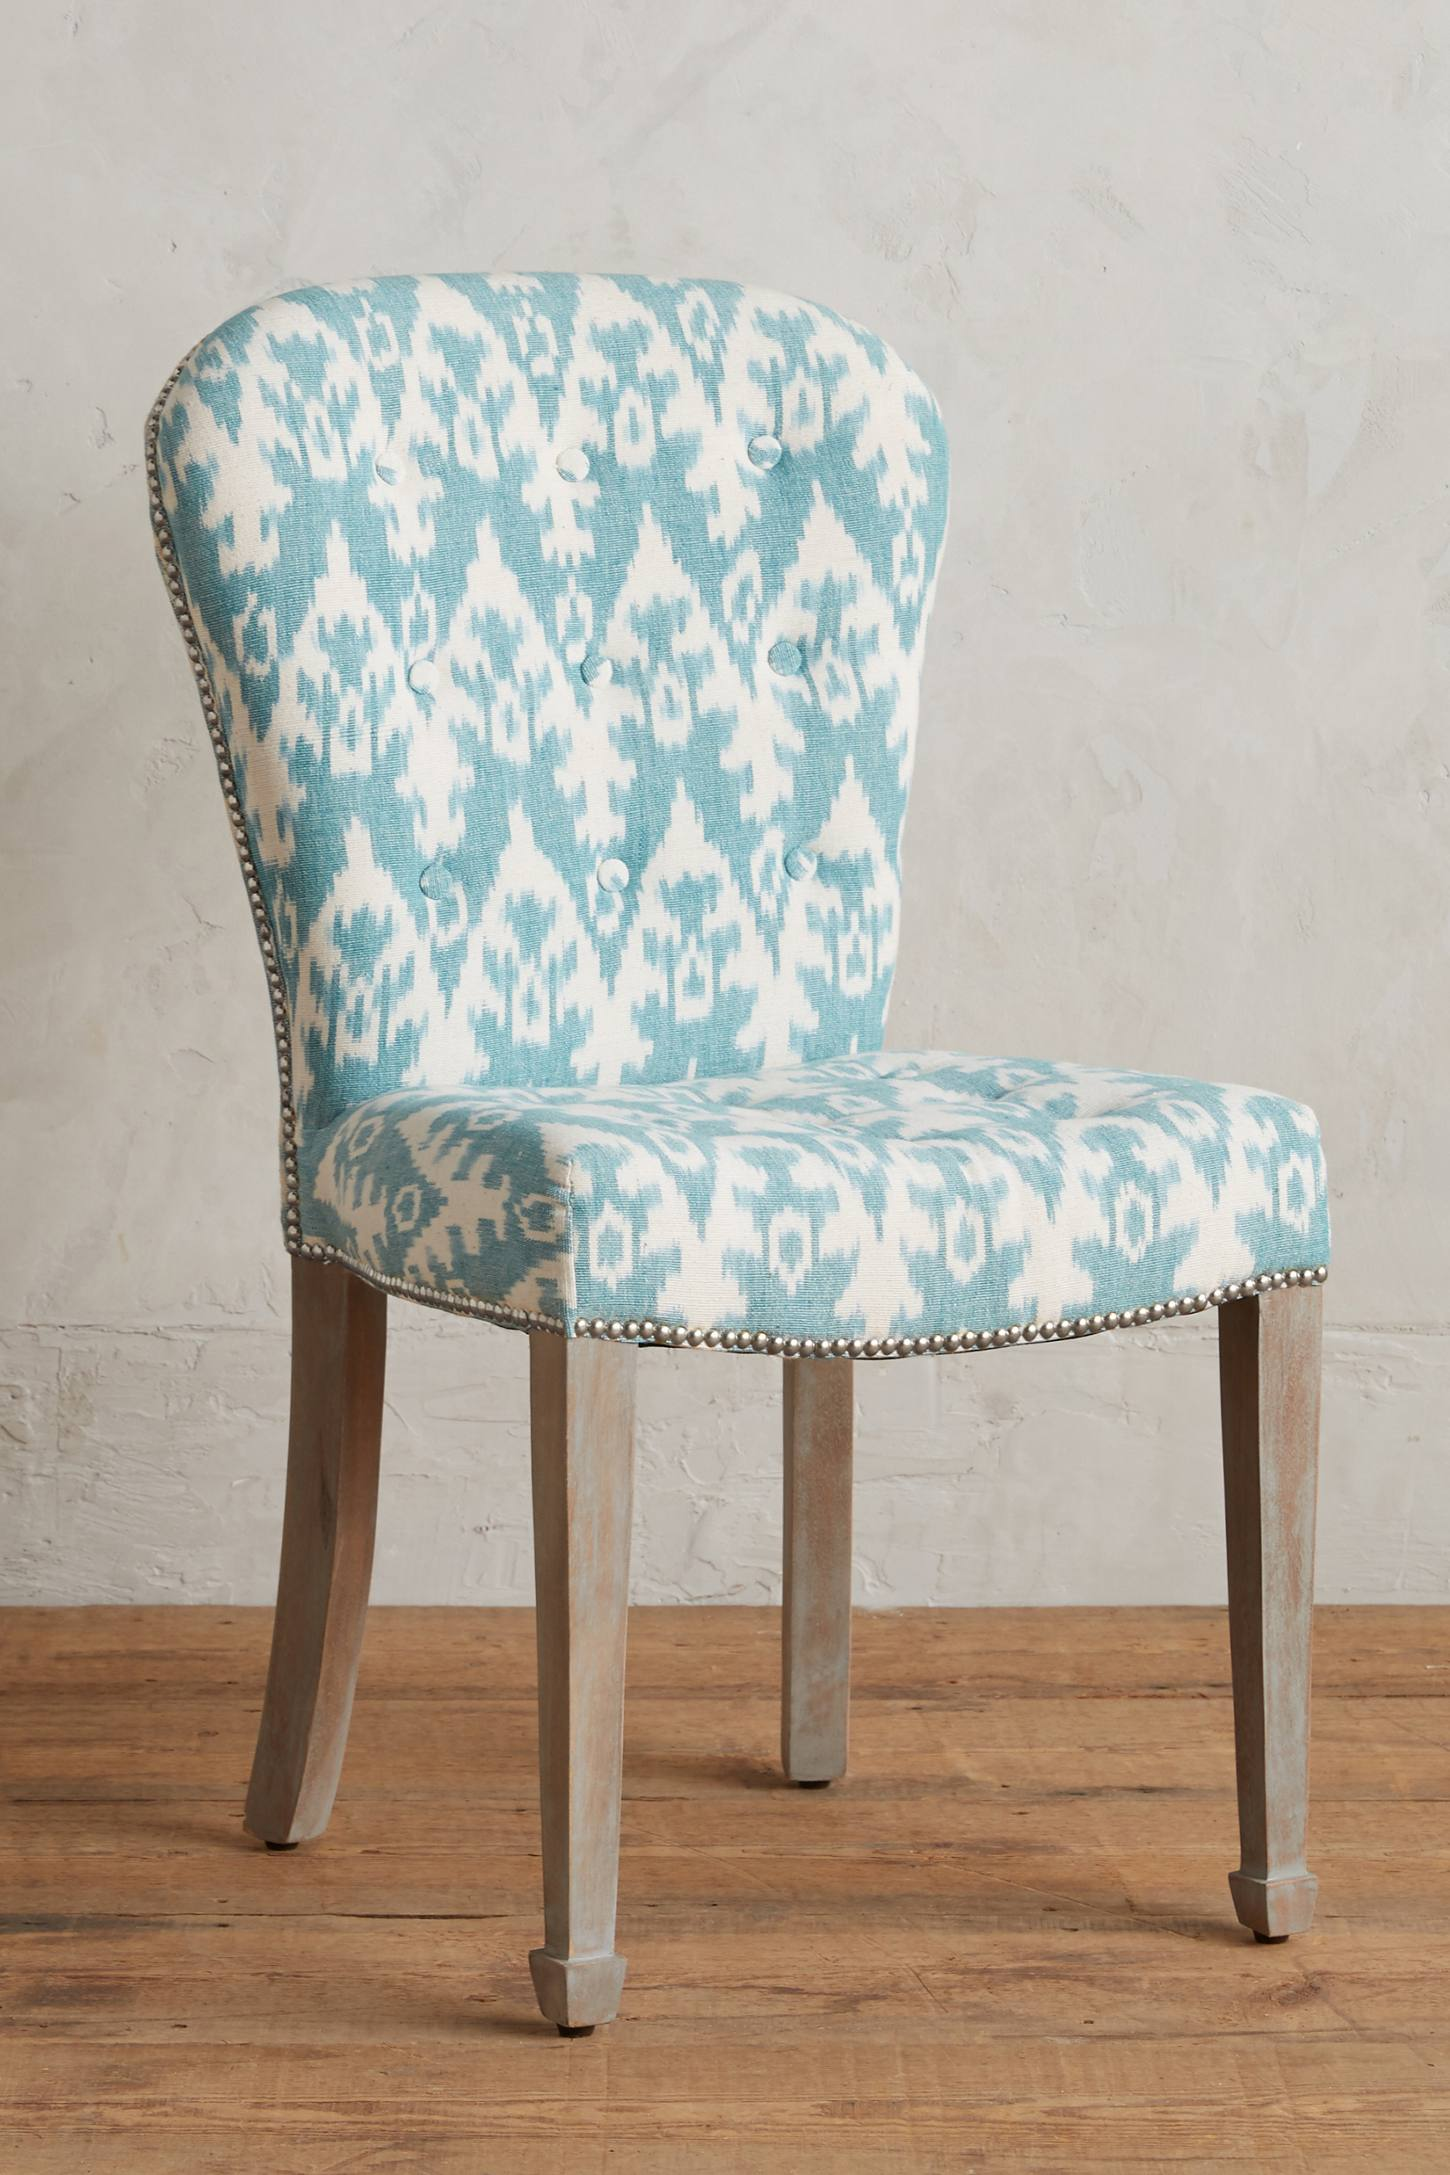 Turquoise ikat chair - Teal Ikat Wallasey Chair